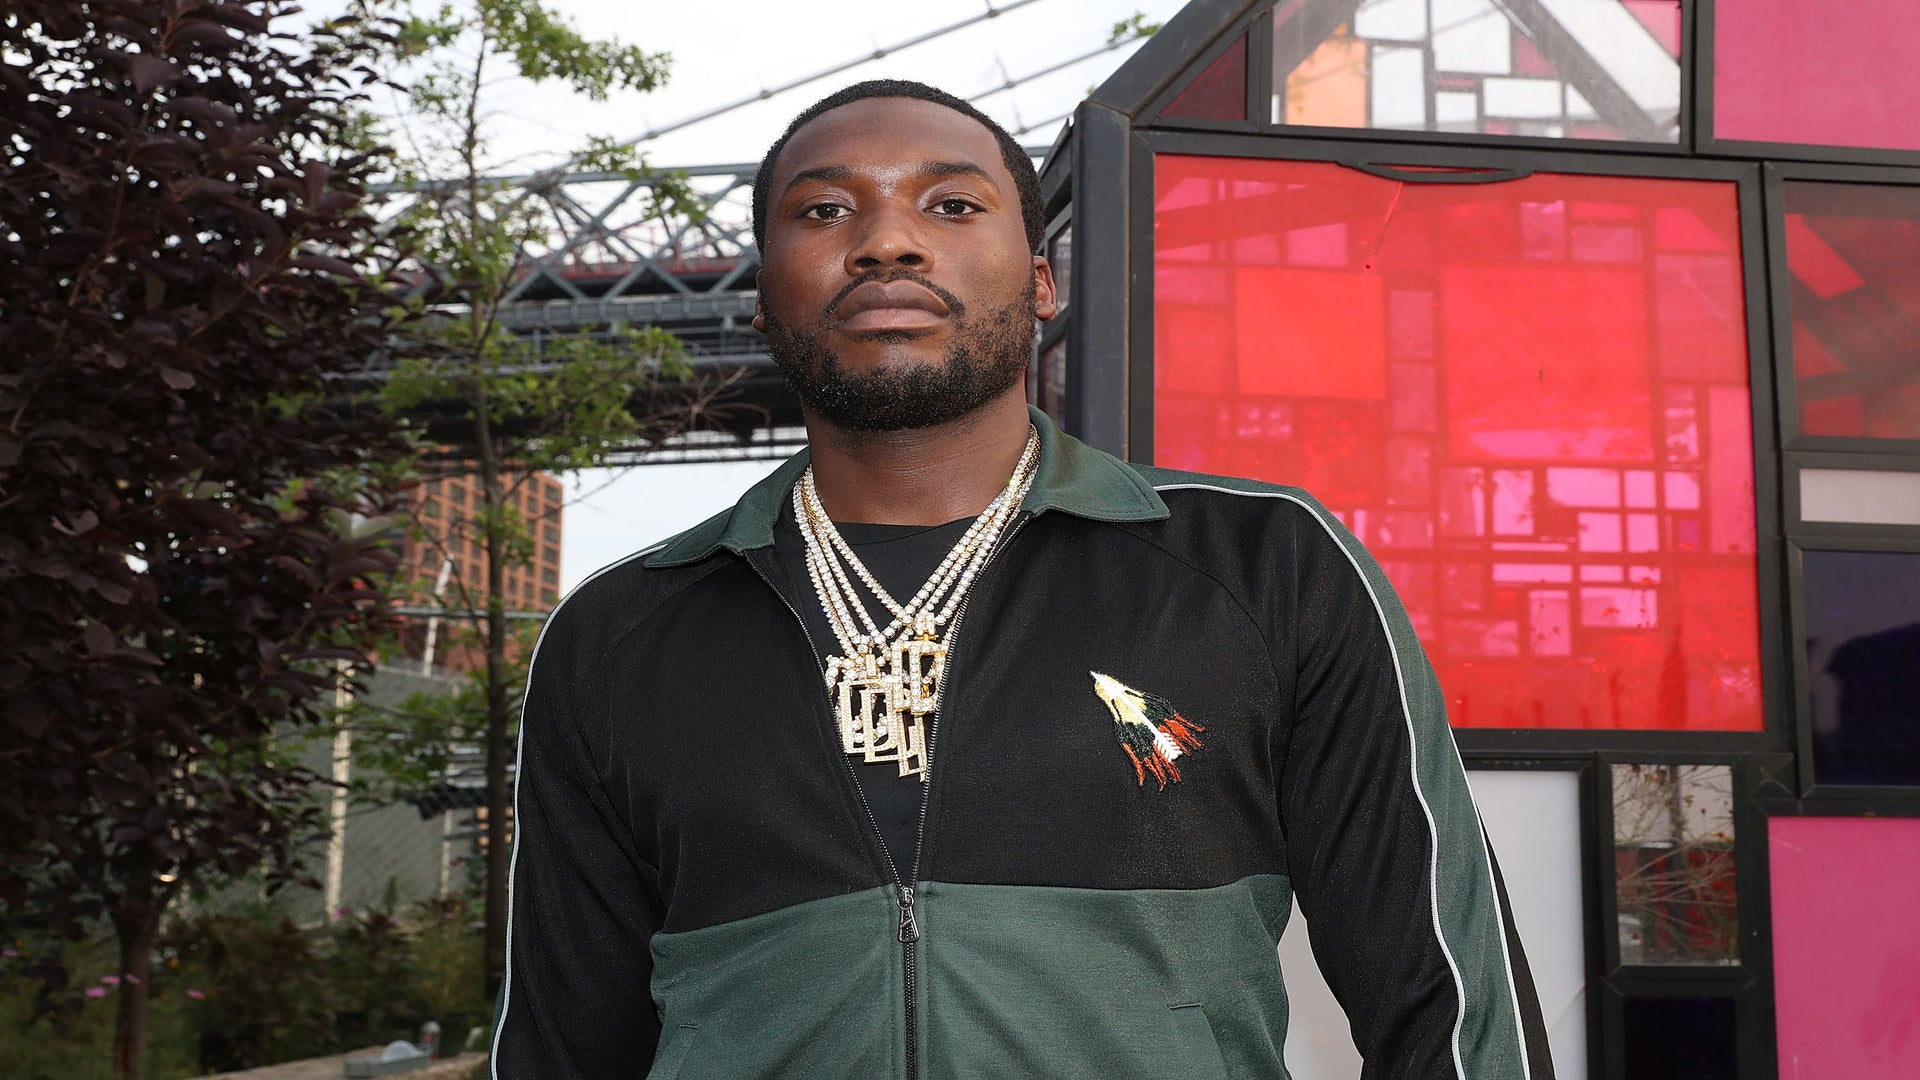 The Quick Read: Celebrities Show Support For Meek Mill After Rapper Receives Prison Sentence